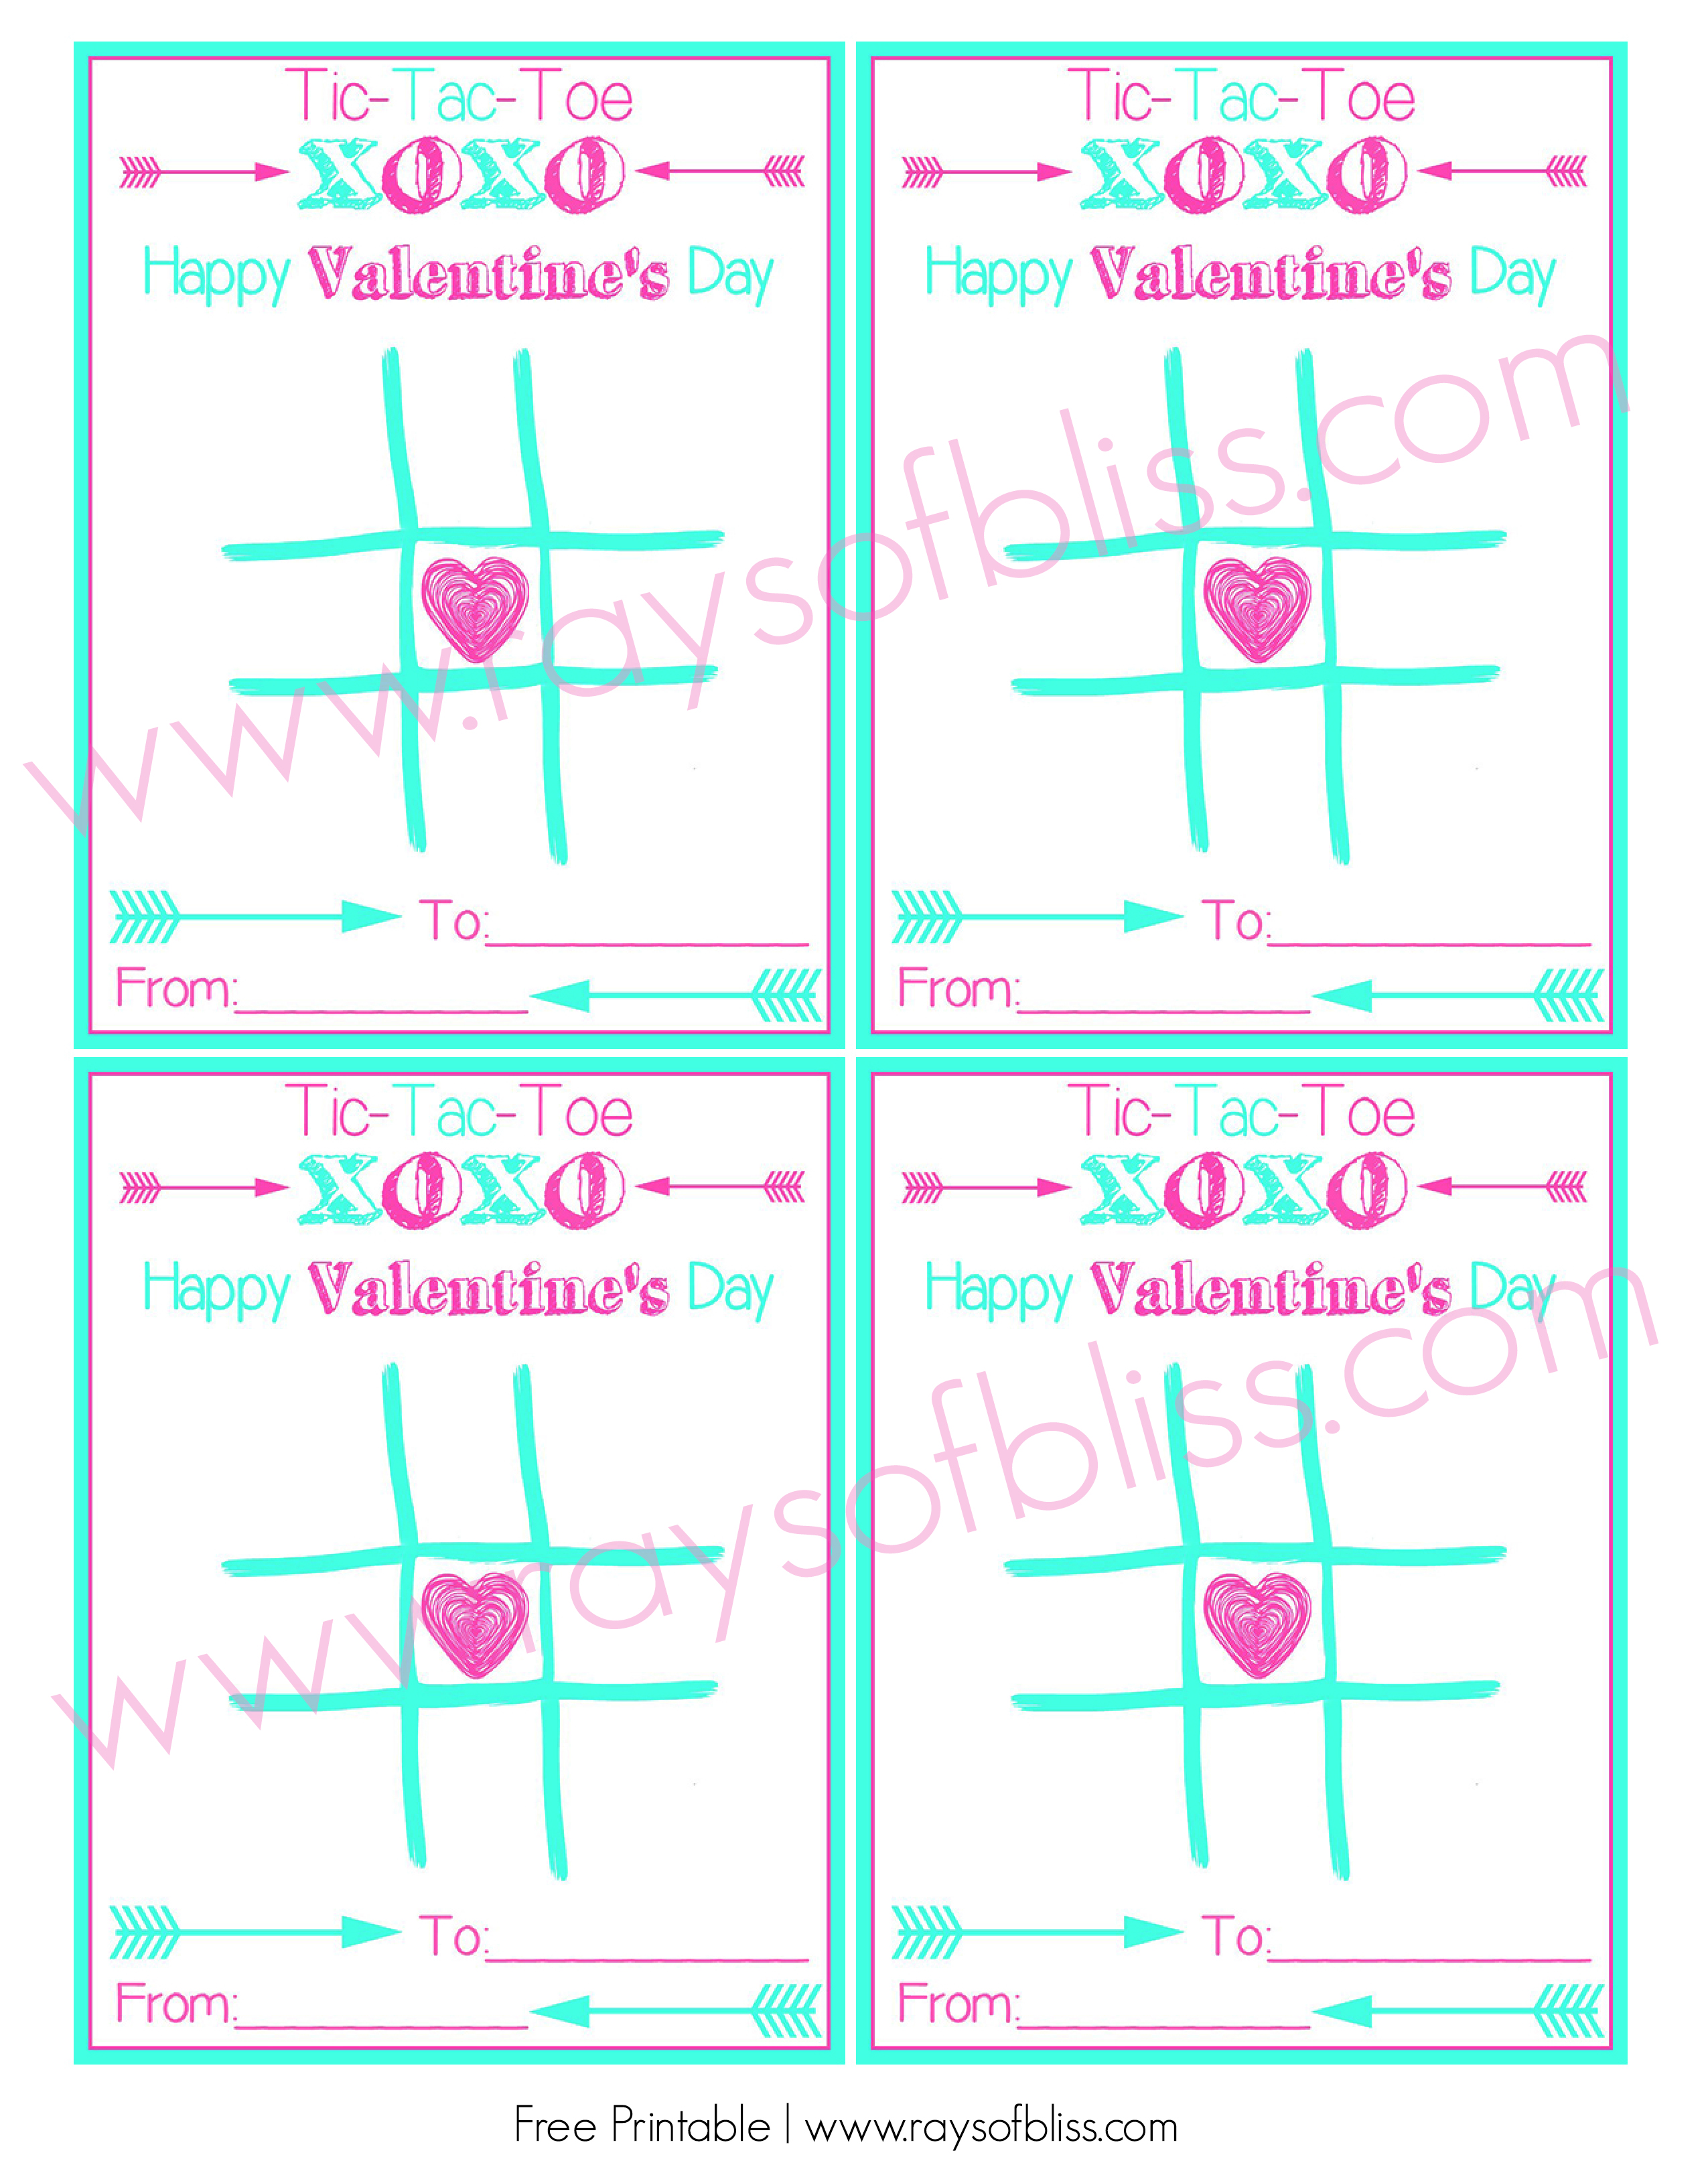 image relating to Tic Tac Toe Valentine Printable known as Tic Tac Toe Valentines Working day Card ~ Totally free Printable - Rays of